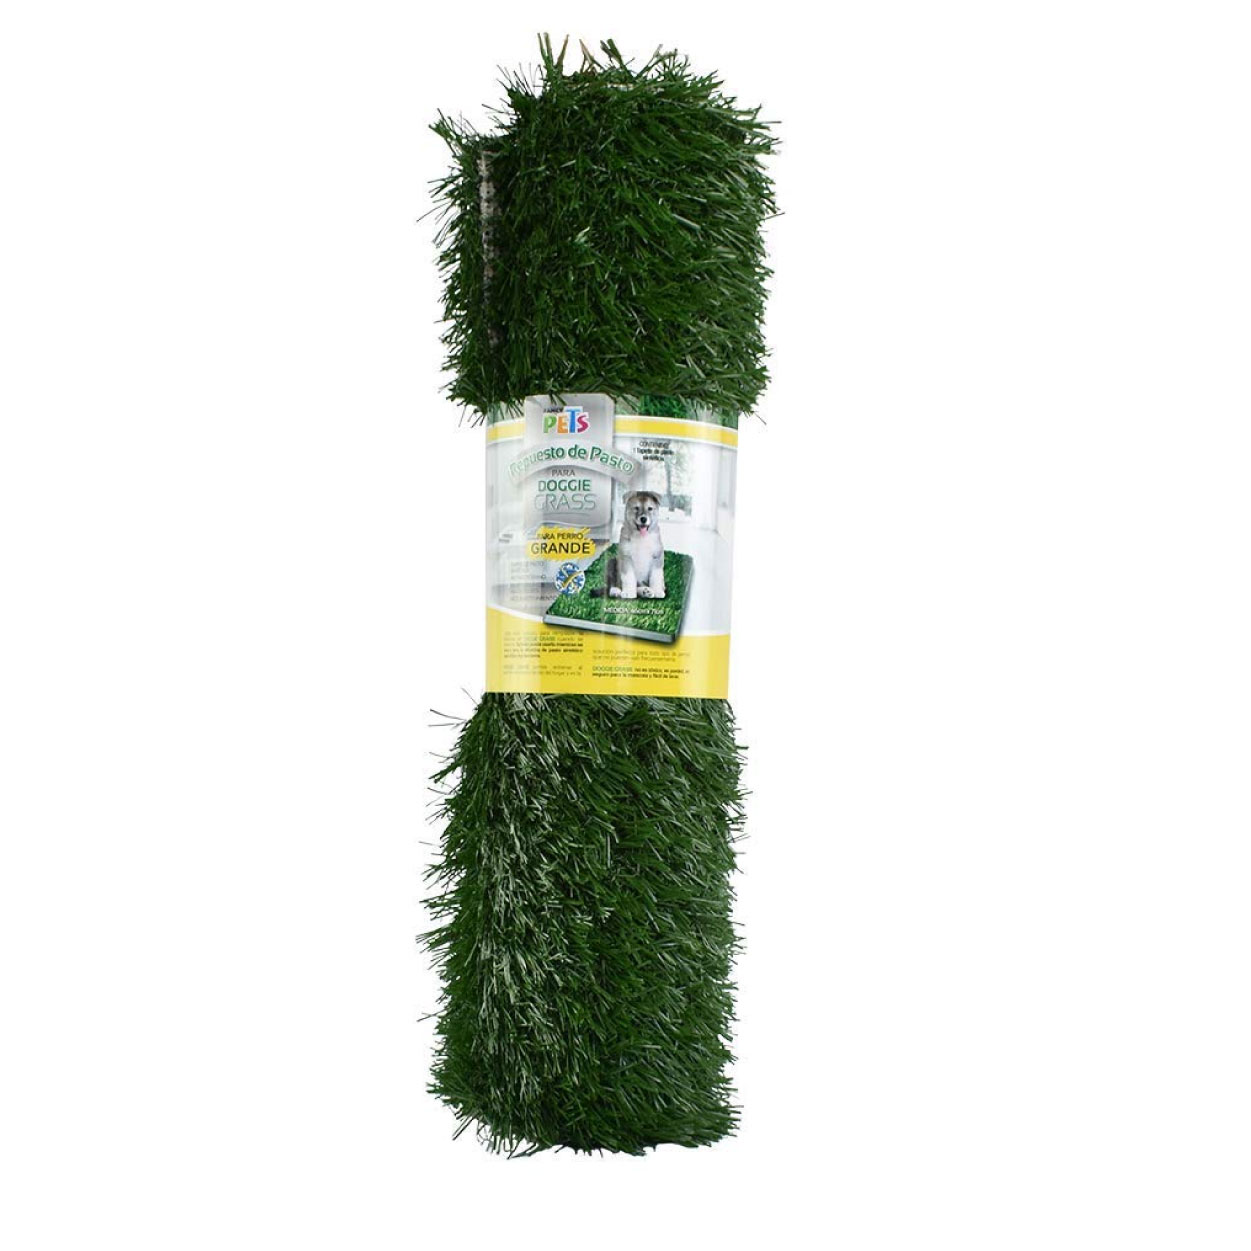 Repuesto Tapete de Pasto Sanitario Entrenador Doggie Grass Fancy Pets